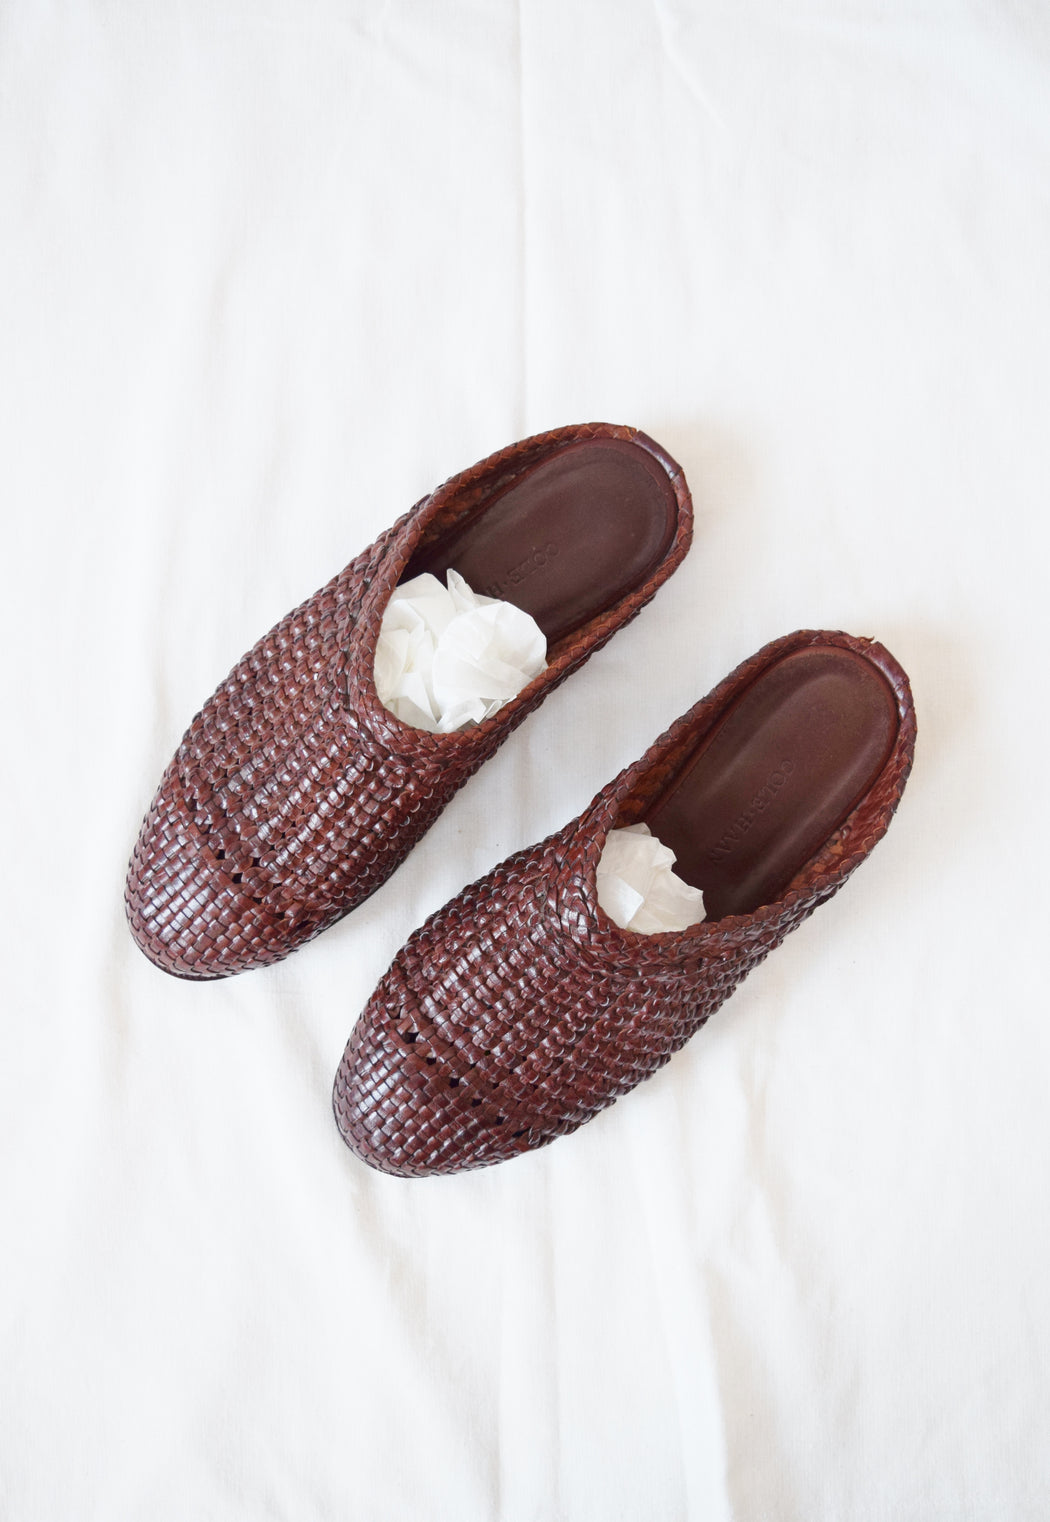 Cole Haan Indian-Style Leather Slides | Men's US 8.5, Women's 10.5